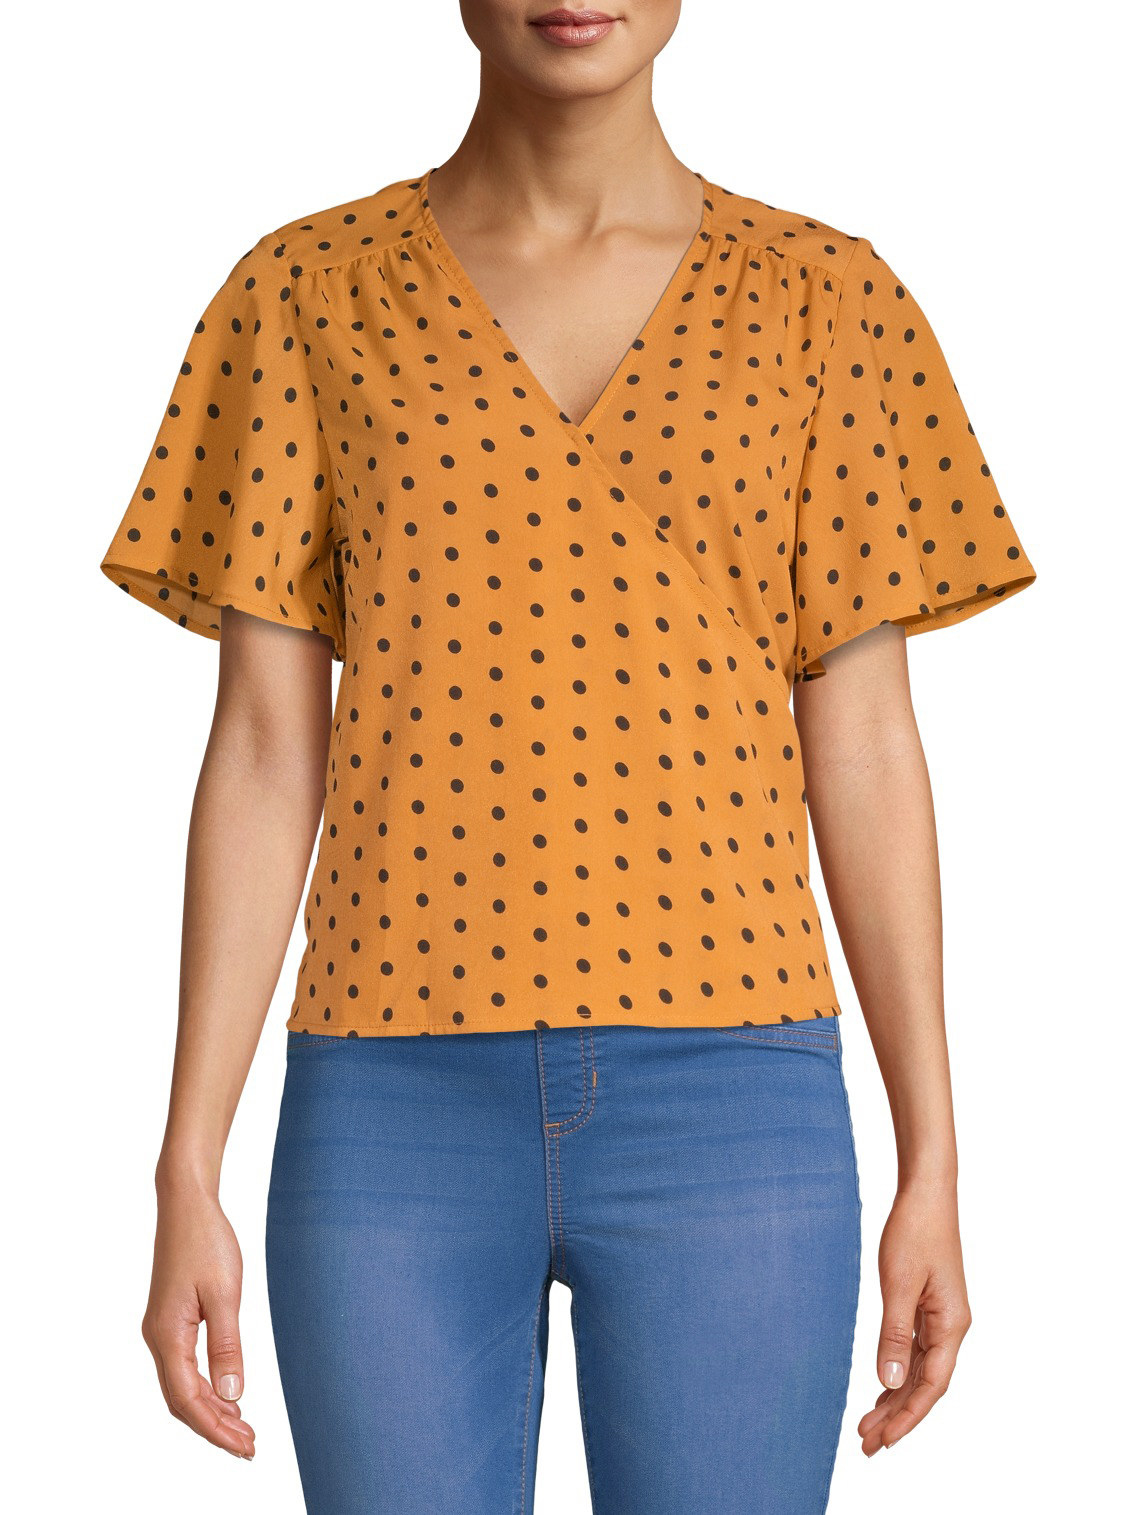 The black and yellow polk dot top